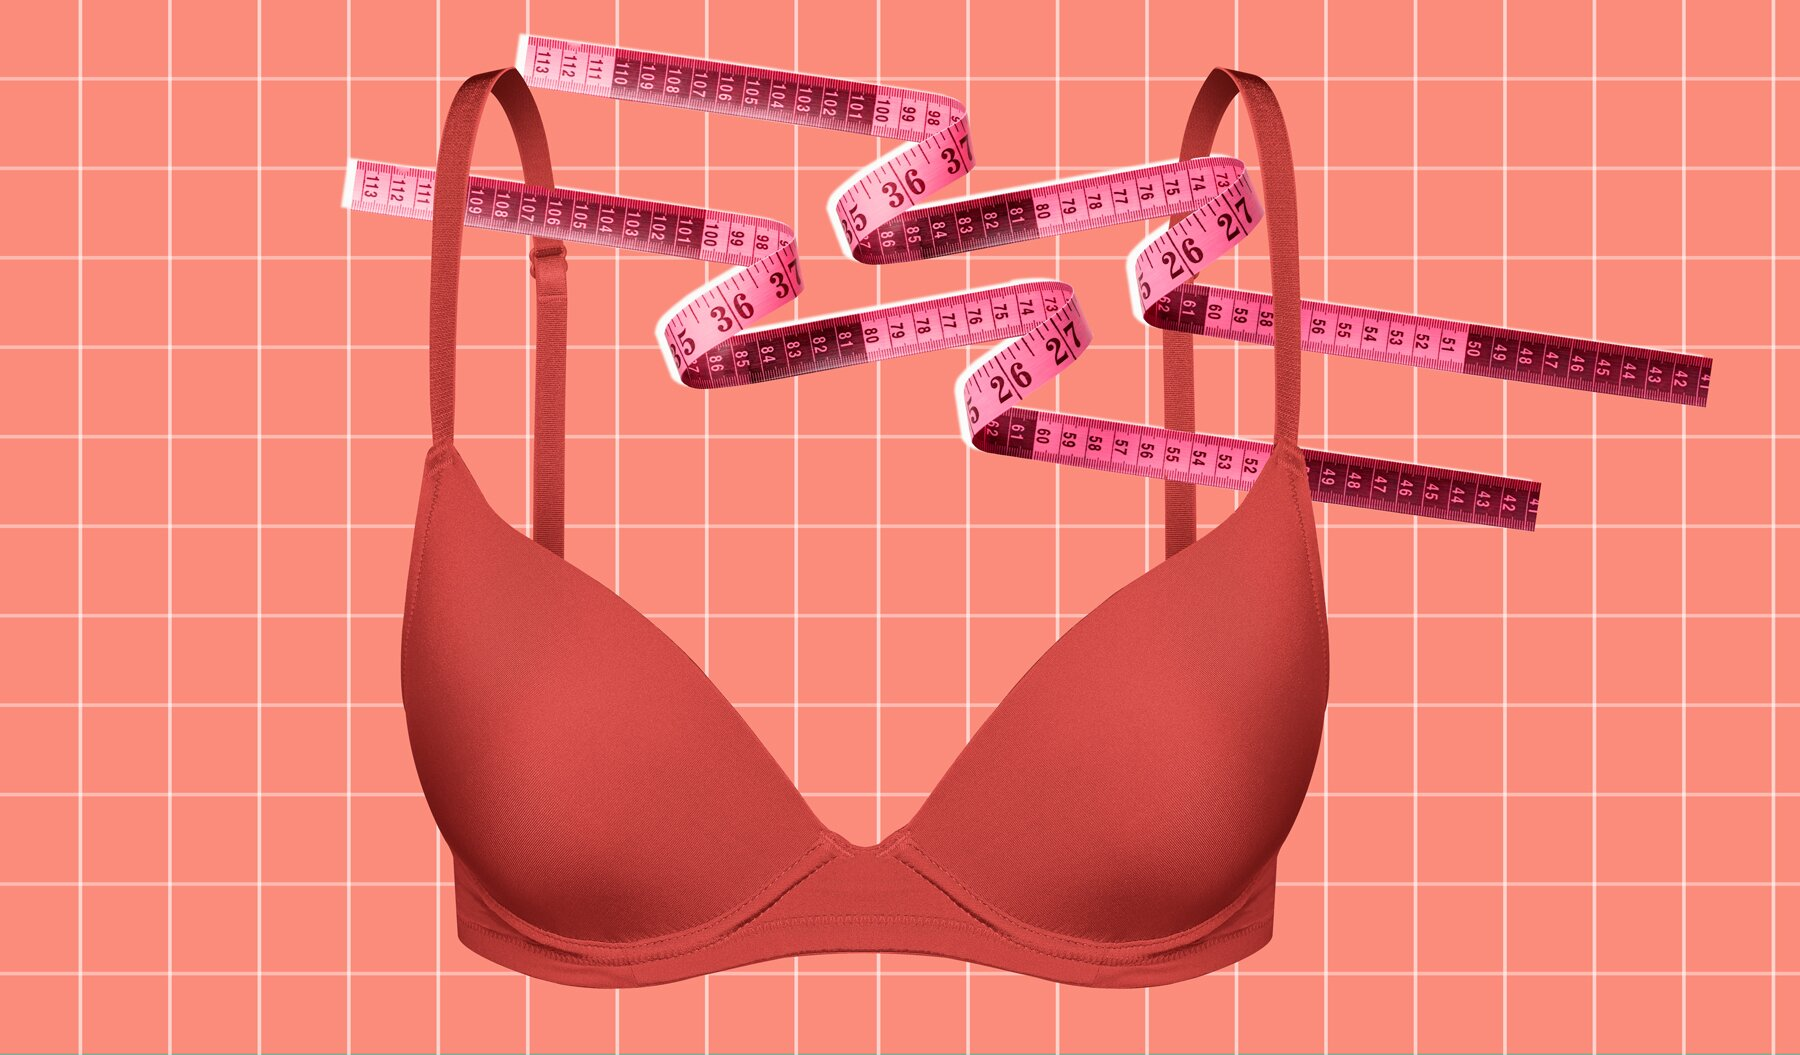 fd4de68ab How to Measure Your Bra Size